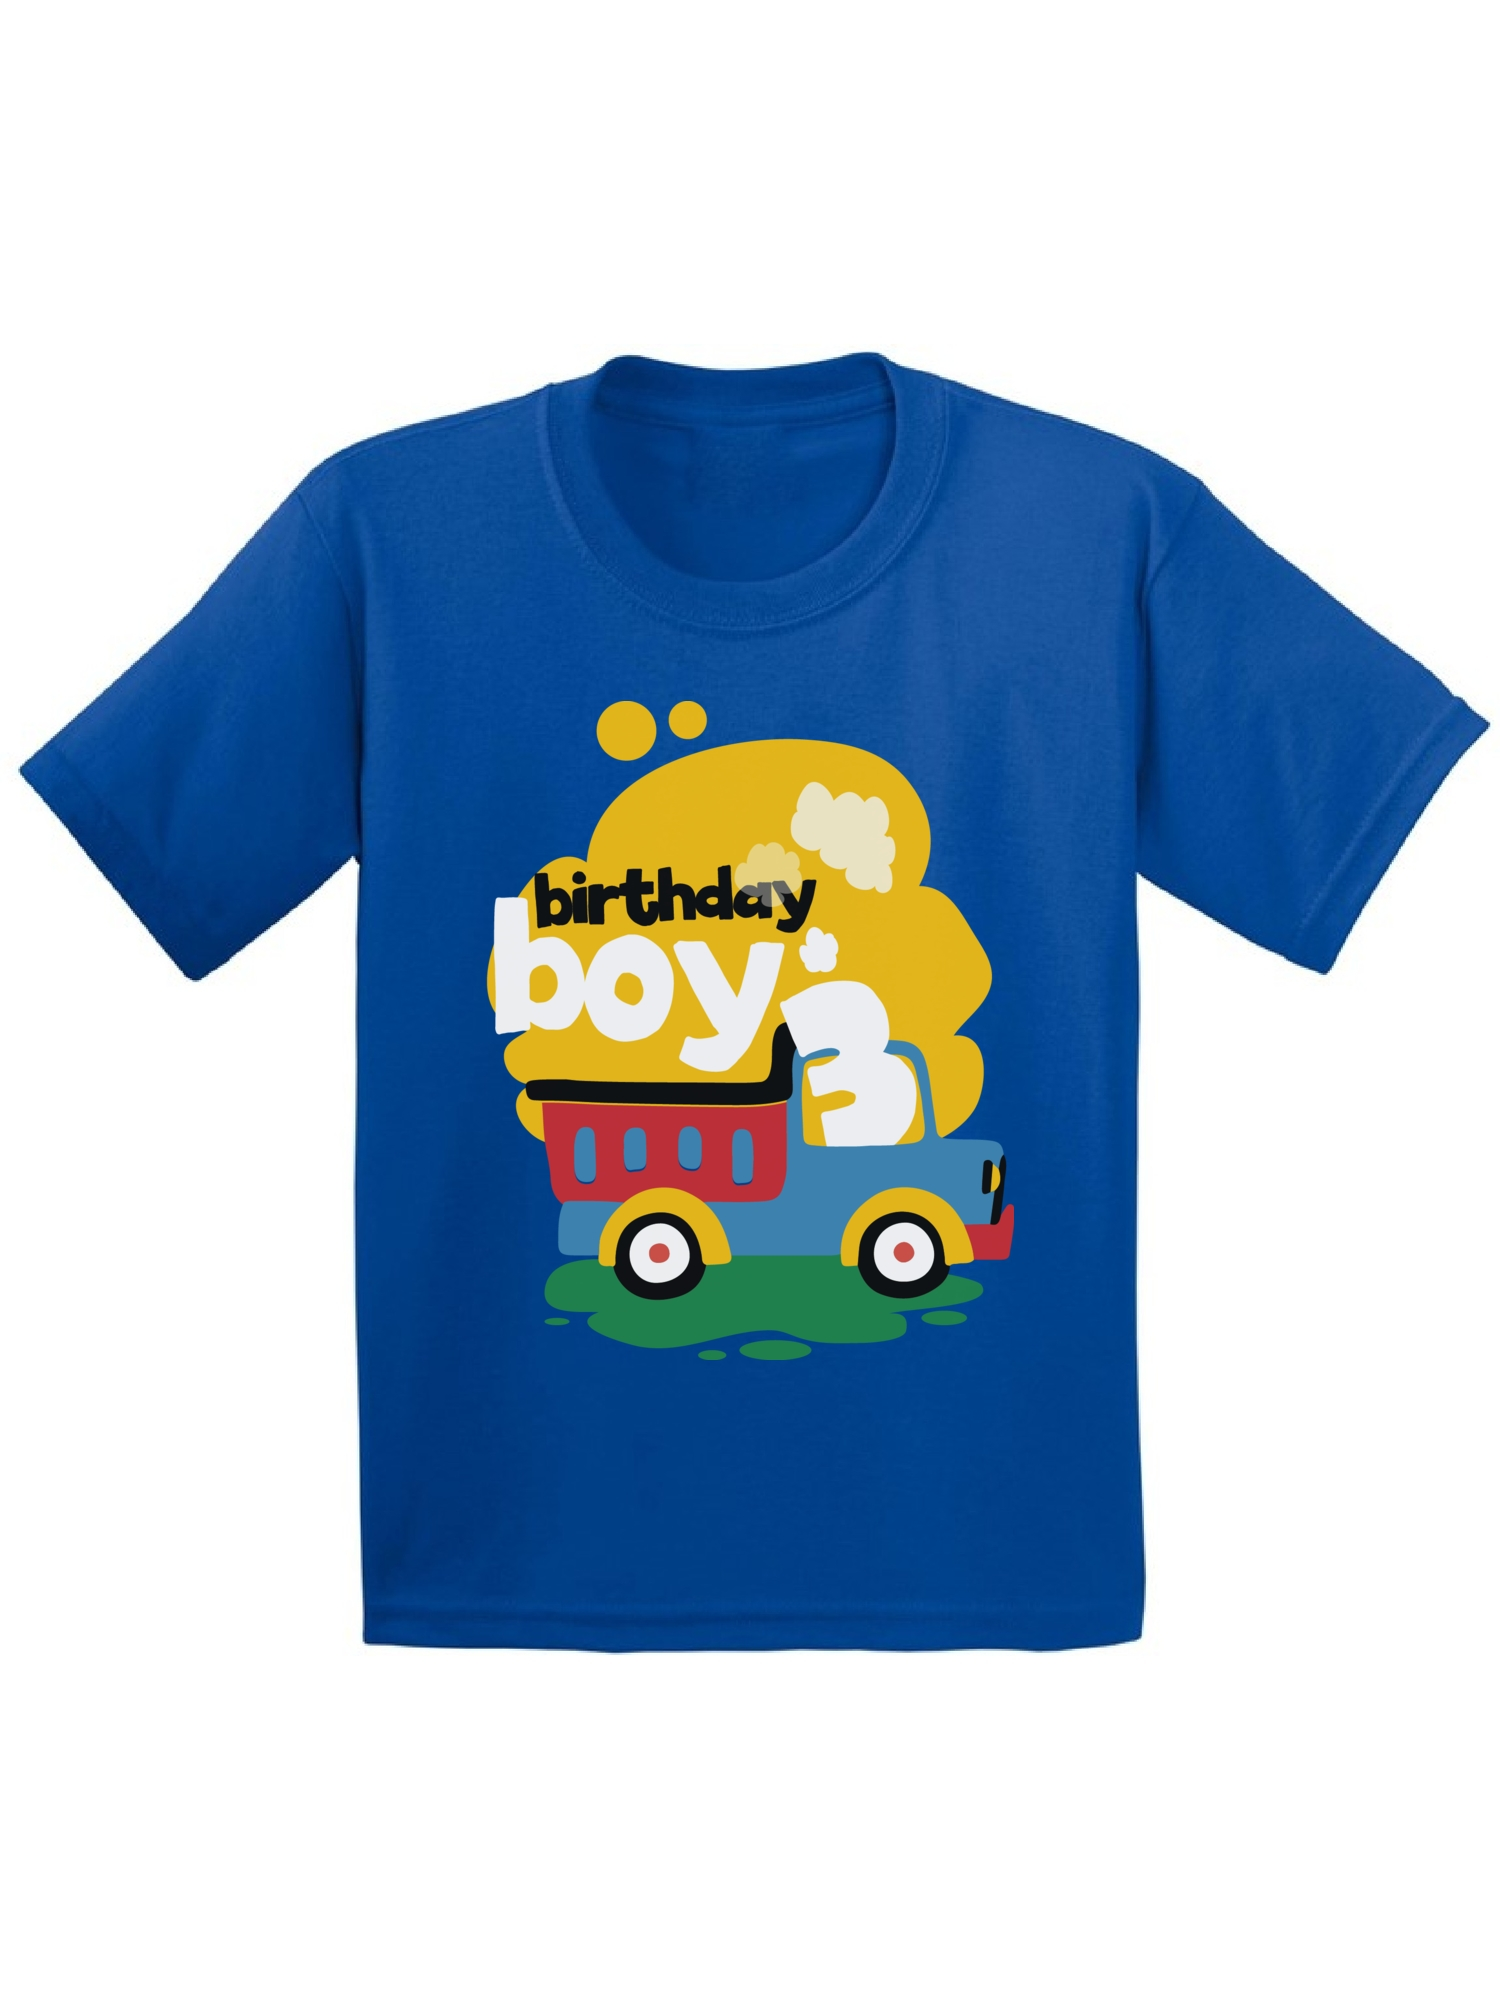 Awkward Styles Awkward Styles Toy Truck Birthday Boy Toddler Shirt 3rd Birthday Shirt For Toddler Boys Truck Themed Birthday Party Third Birthday Gifts For 3 Year Old Boy Cute Birthday Outfit